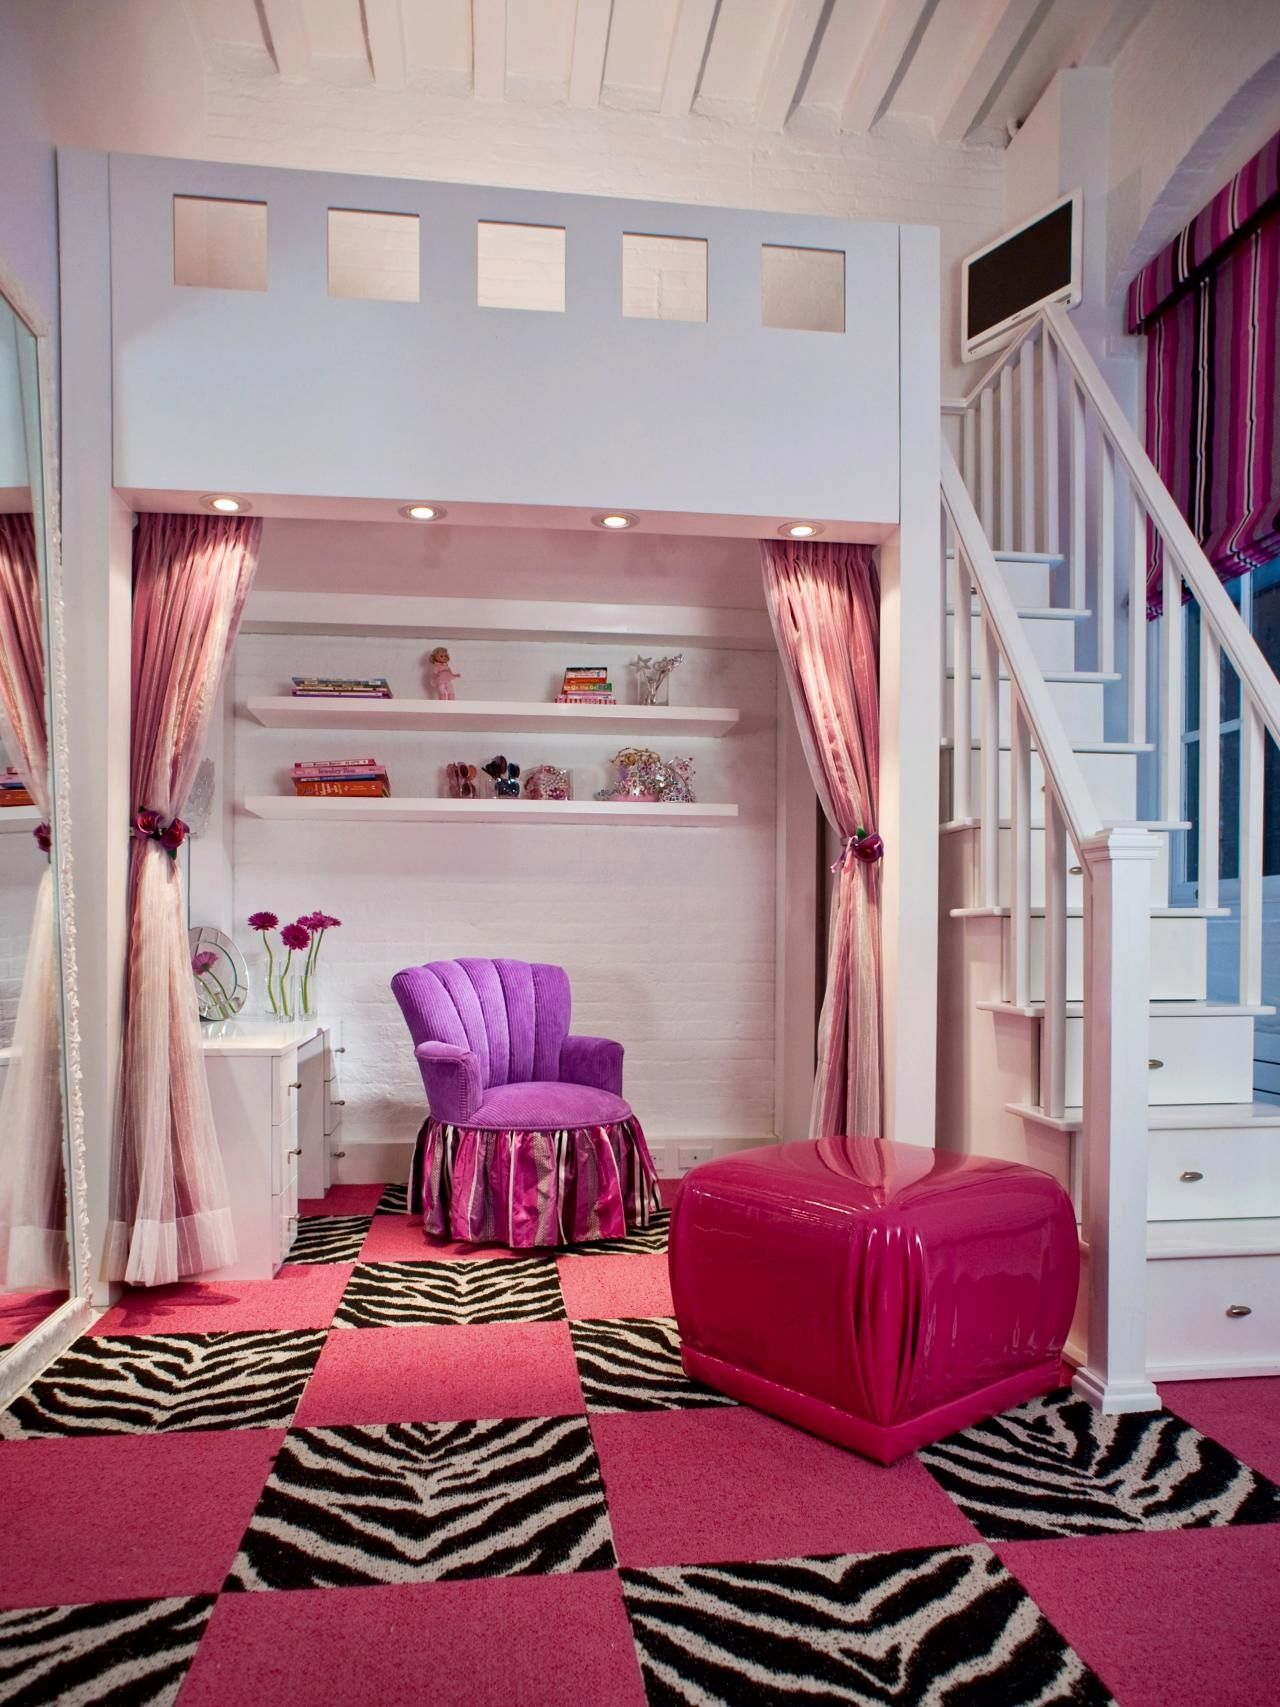 10 Year Old Girl Bedroom Ideas For 11 Olds Awesome Inspirational Of Girl Bedroom Designs Girls Bunk Beds Girl Room